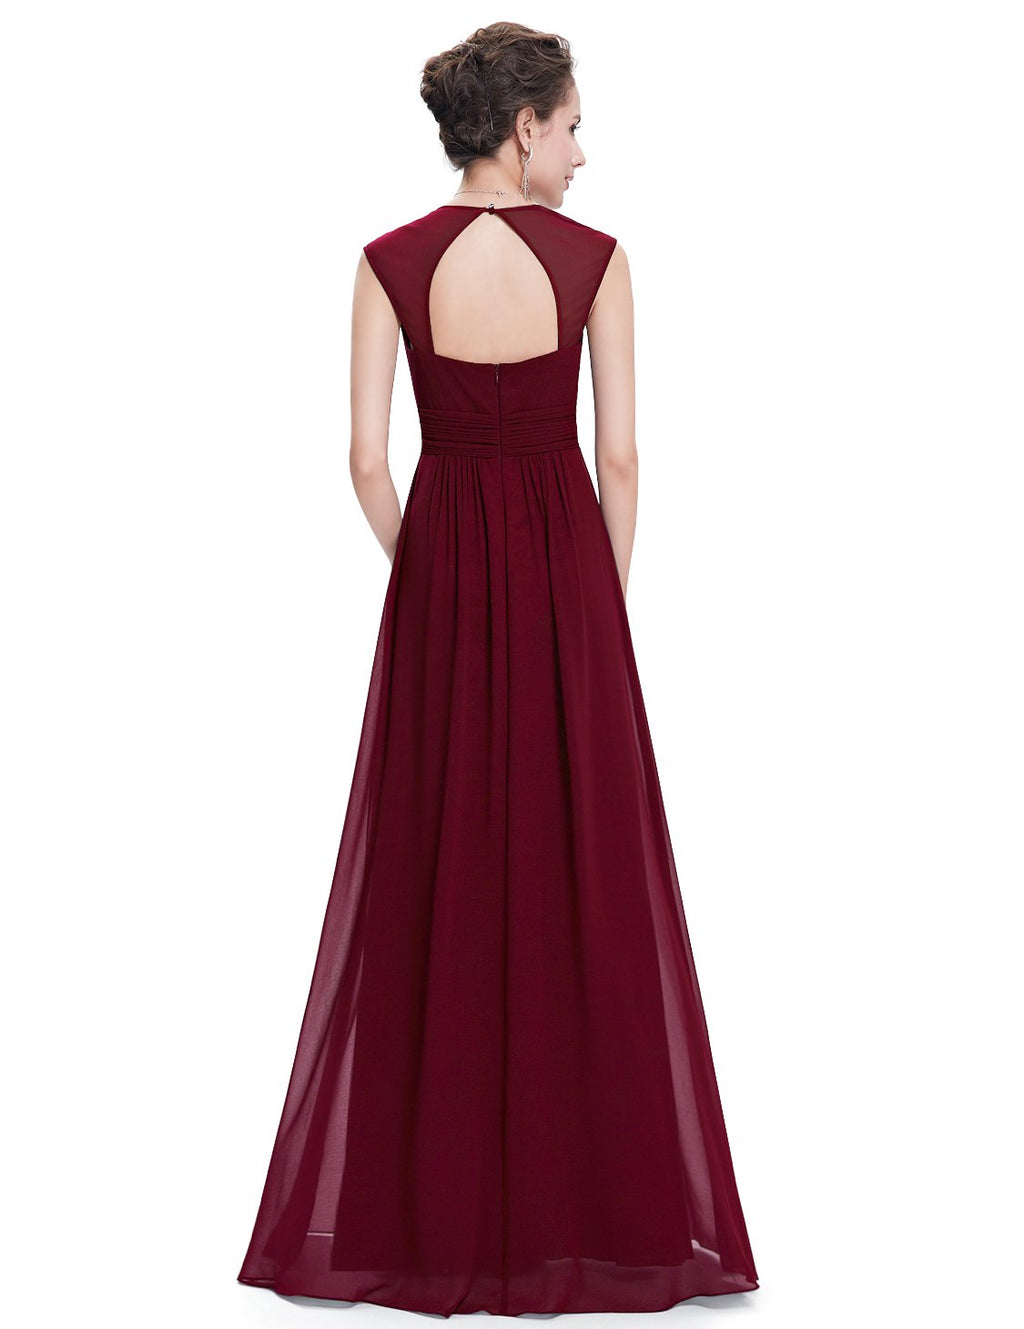 Sexy Neckline Dress Burgundy